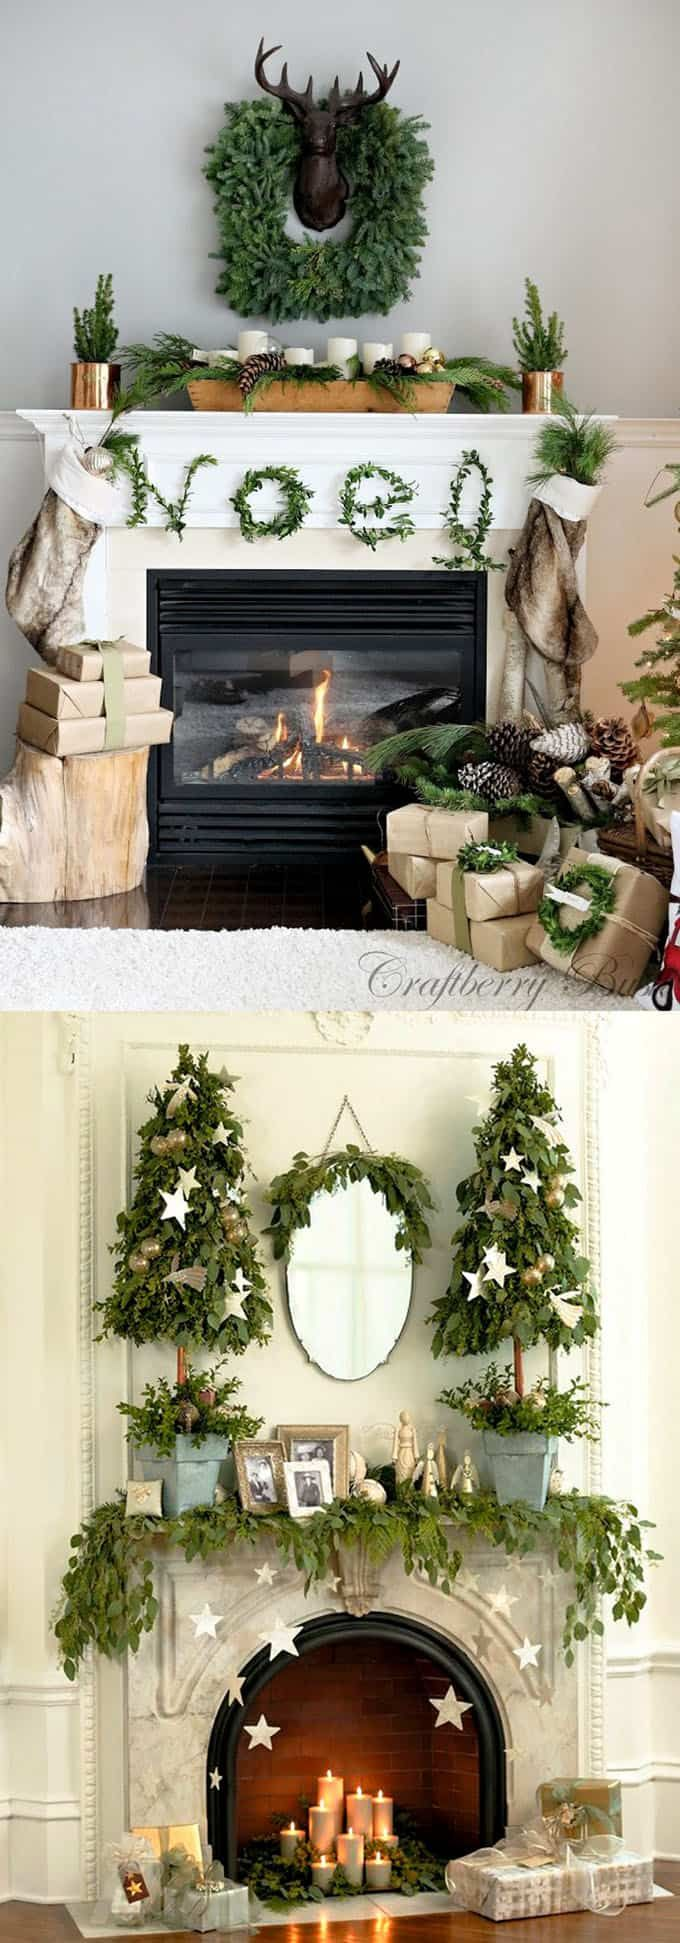 Christmas fireplace : 100+ Favorite Christmas decorating ideas & DIY Christmas decorations for every room, from the best Christmas home tours! Lots of great tips to apply to your own home easily! A Piece of Rainbow